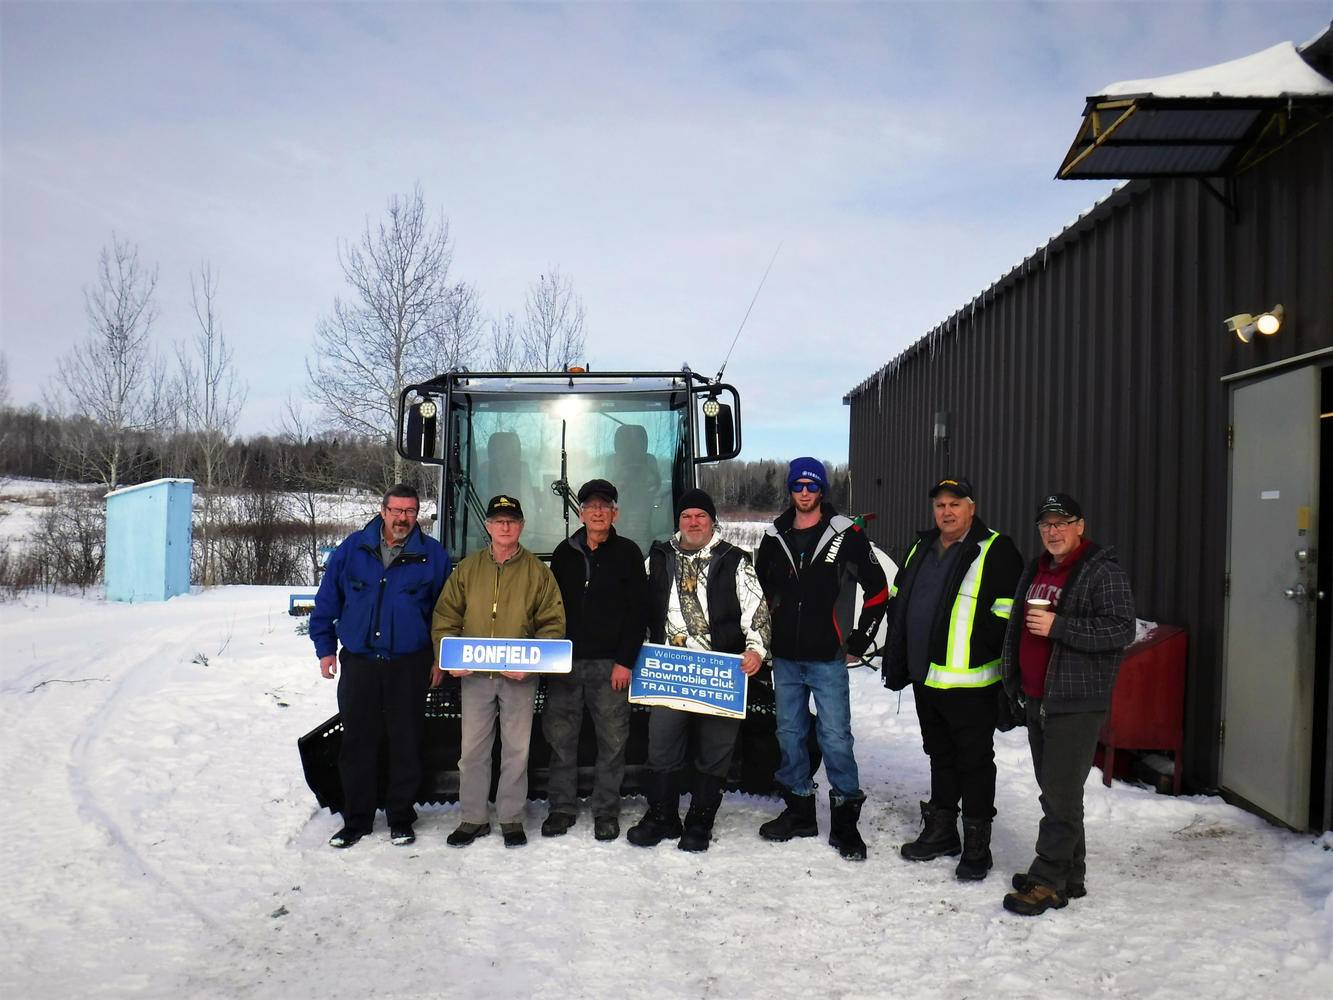 Some of the hardworking volunteers of the Bonfield Snowmobile Club